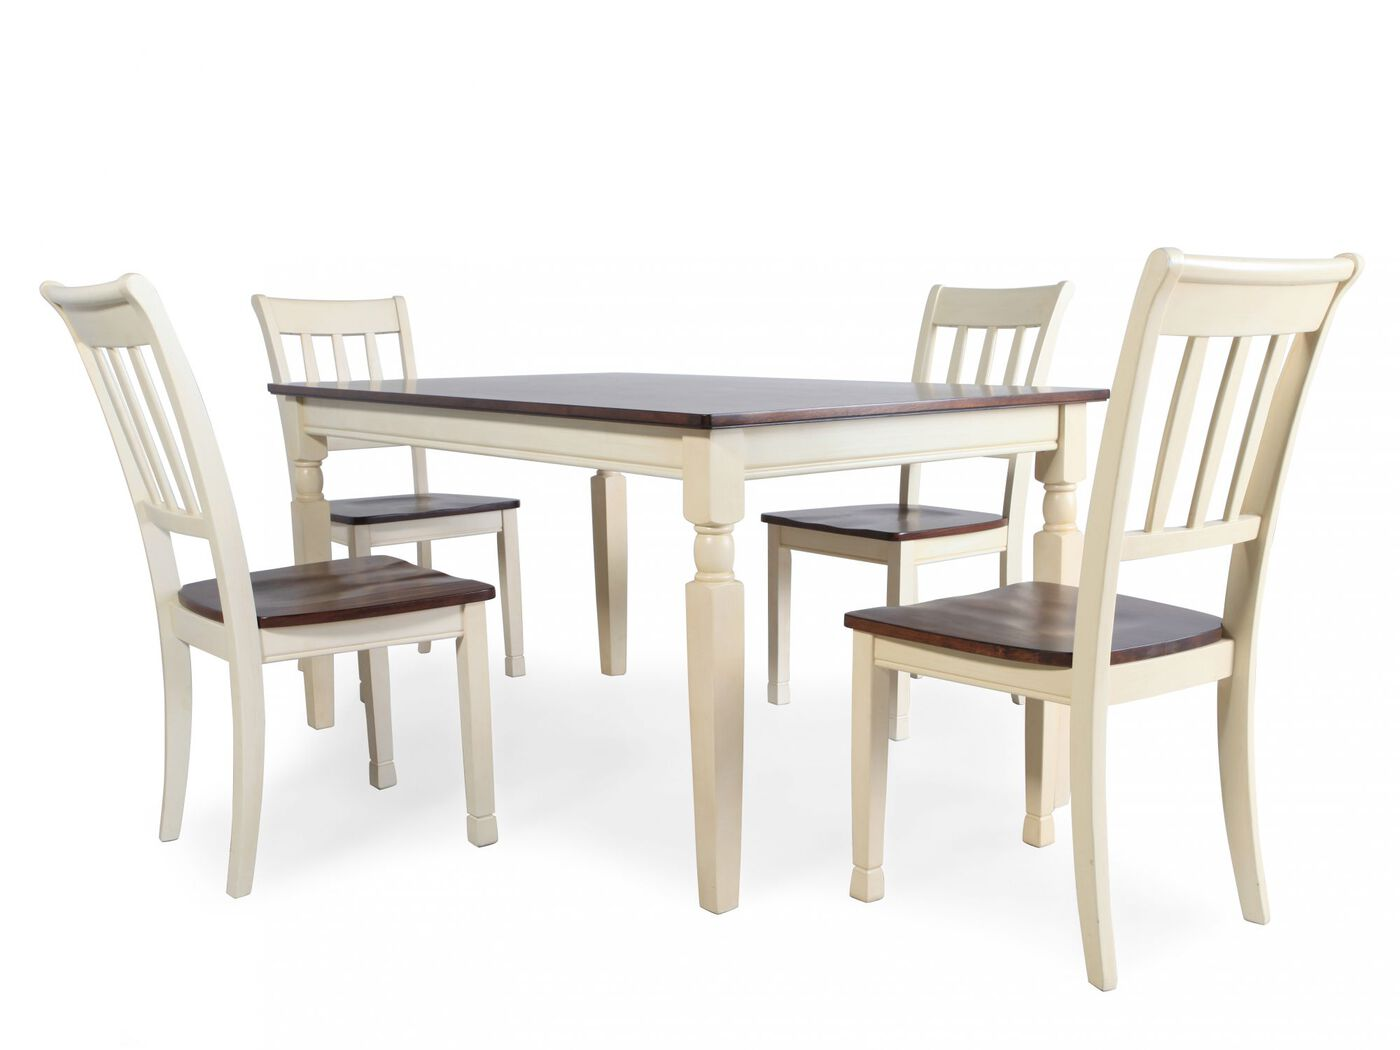 4 Person 5 Piece Kitchen Dining Table Set 1 Table 3 Leather Chairs U0026 1 Bench Espresso